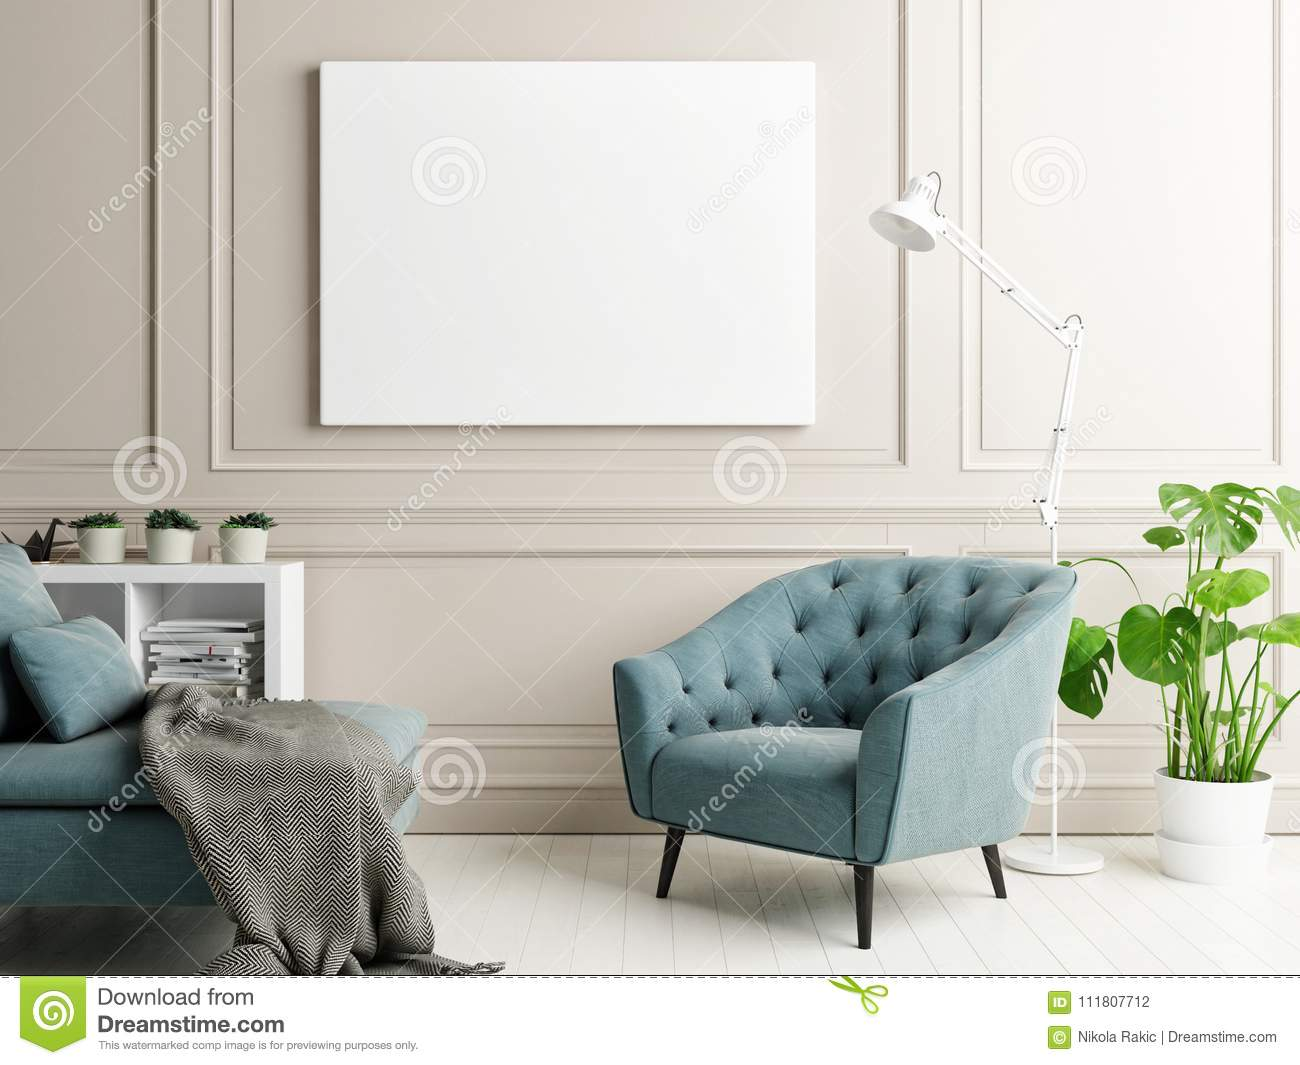 Mock Up Poster In Classic Interior Design,